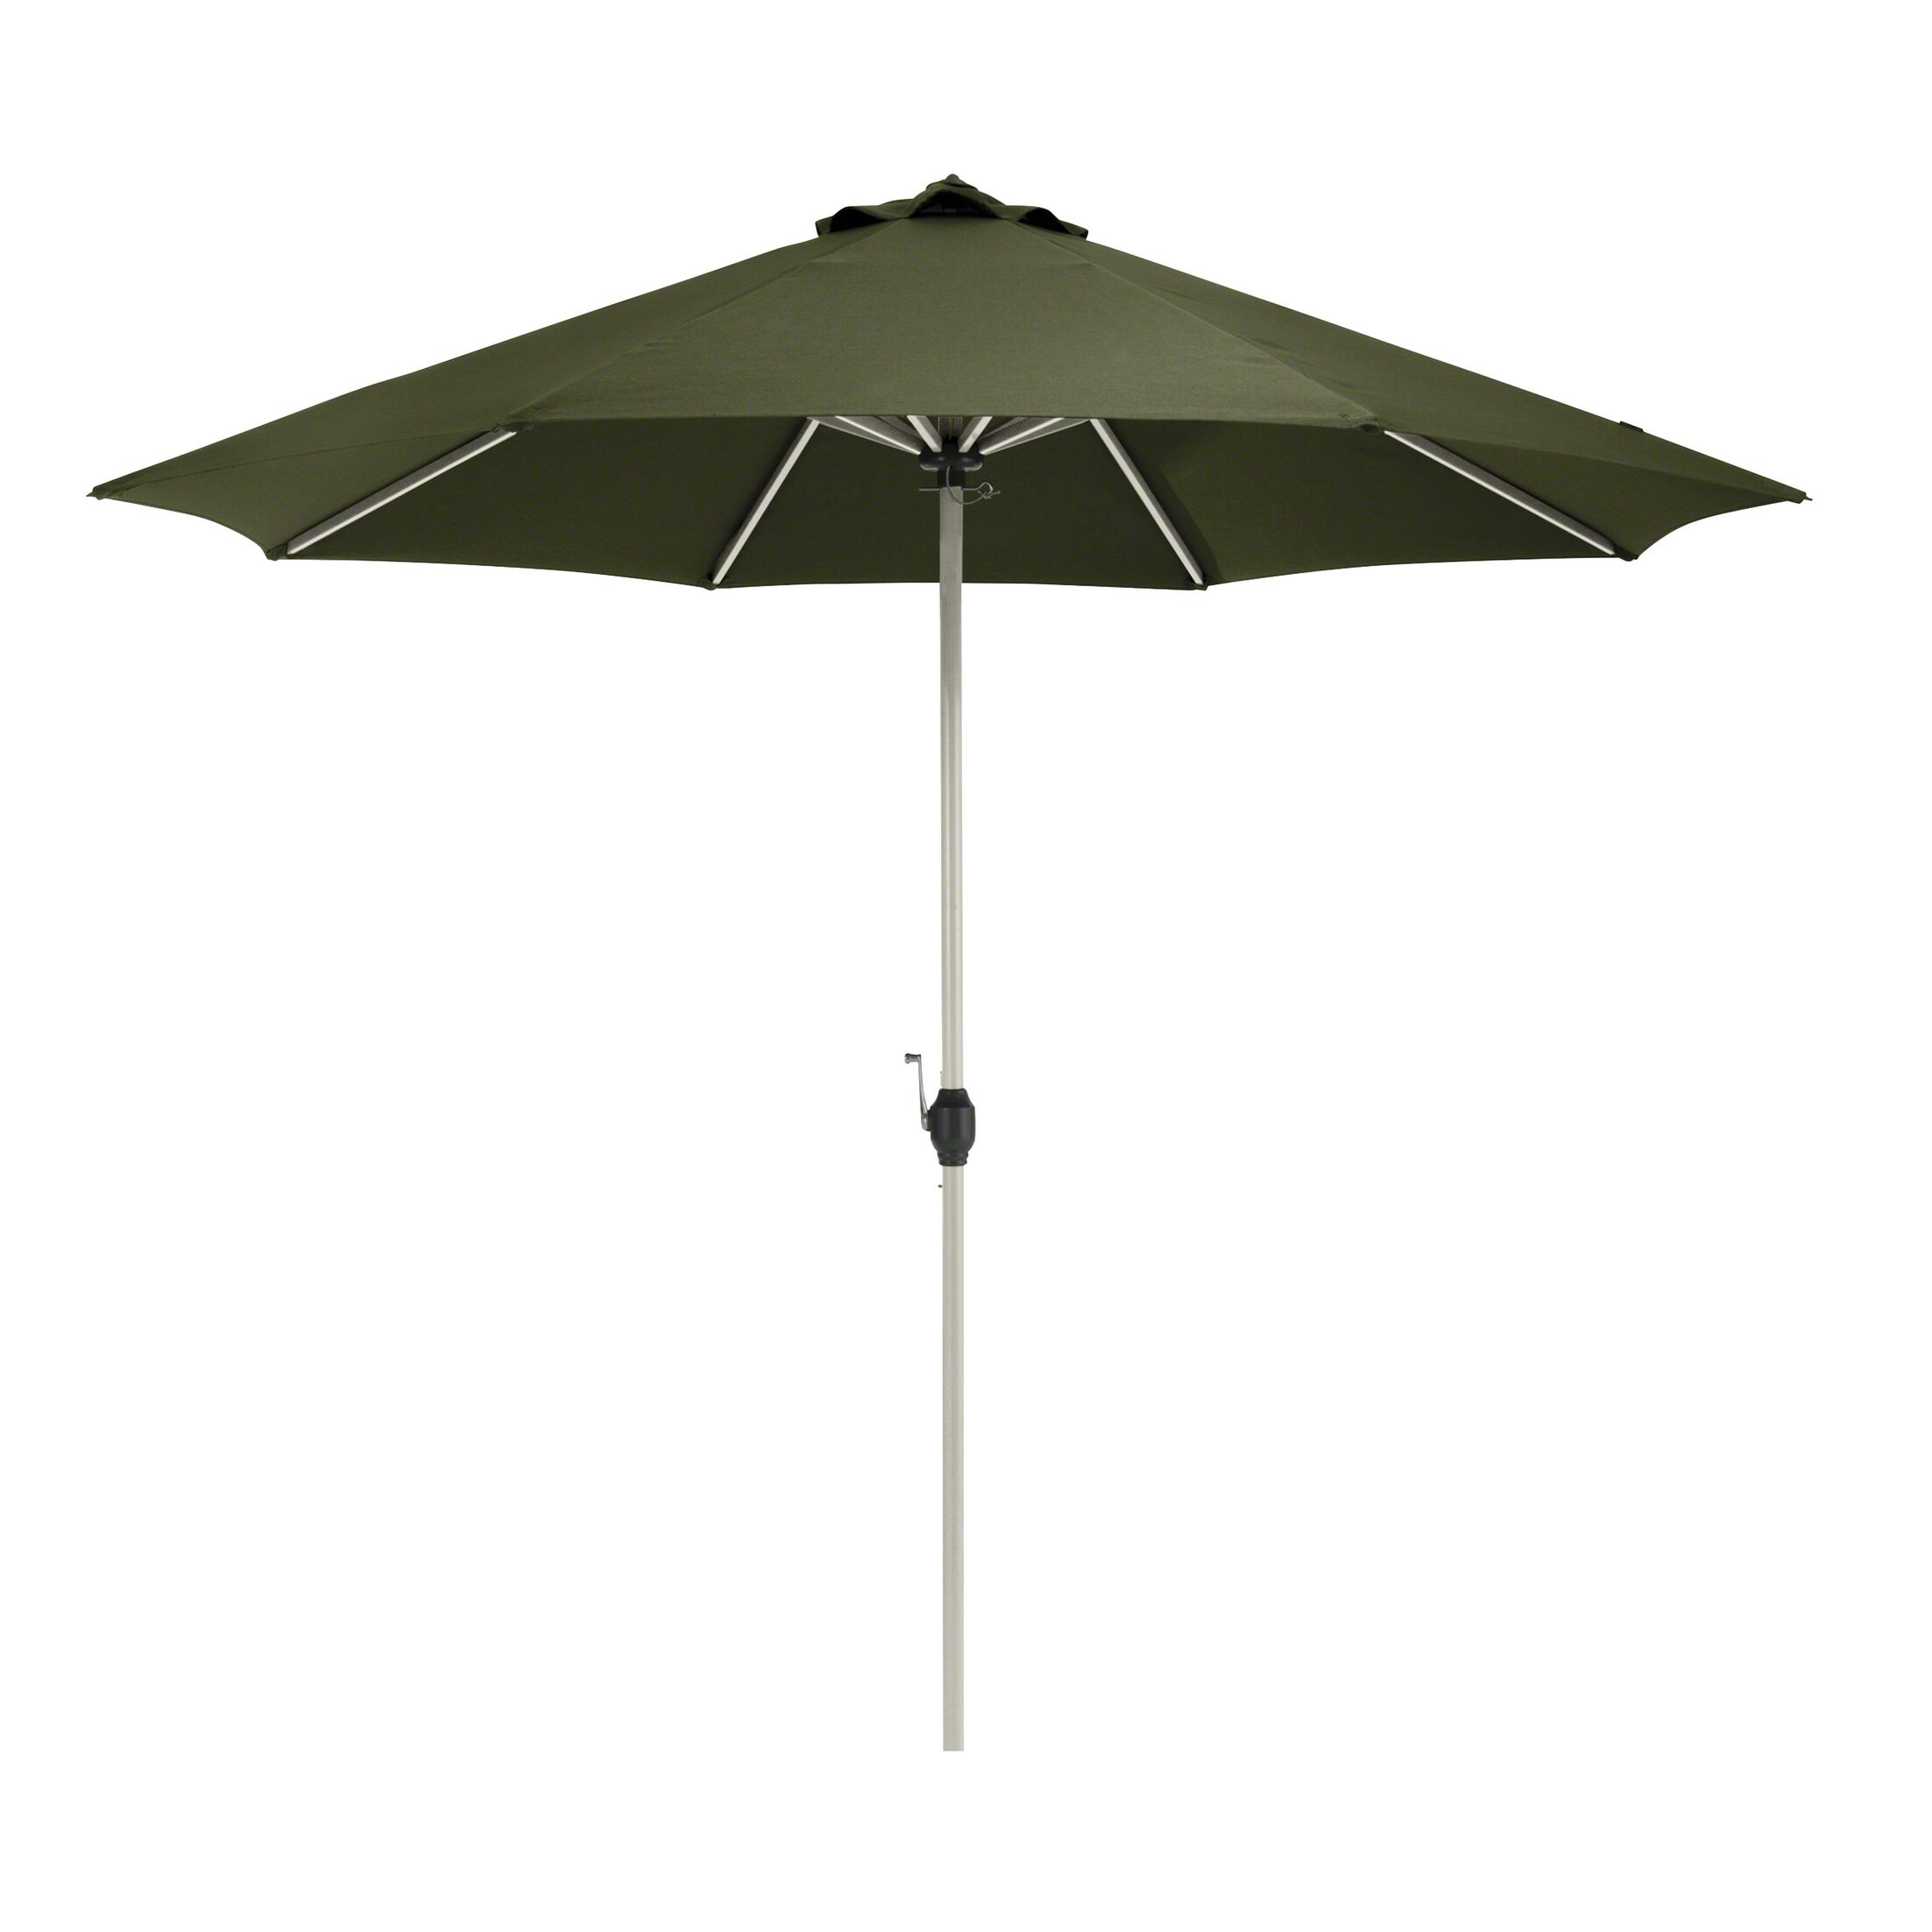 Gunn Fadesafe? 9' Market Umbrella Fabric: Heather Fern Green